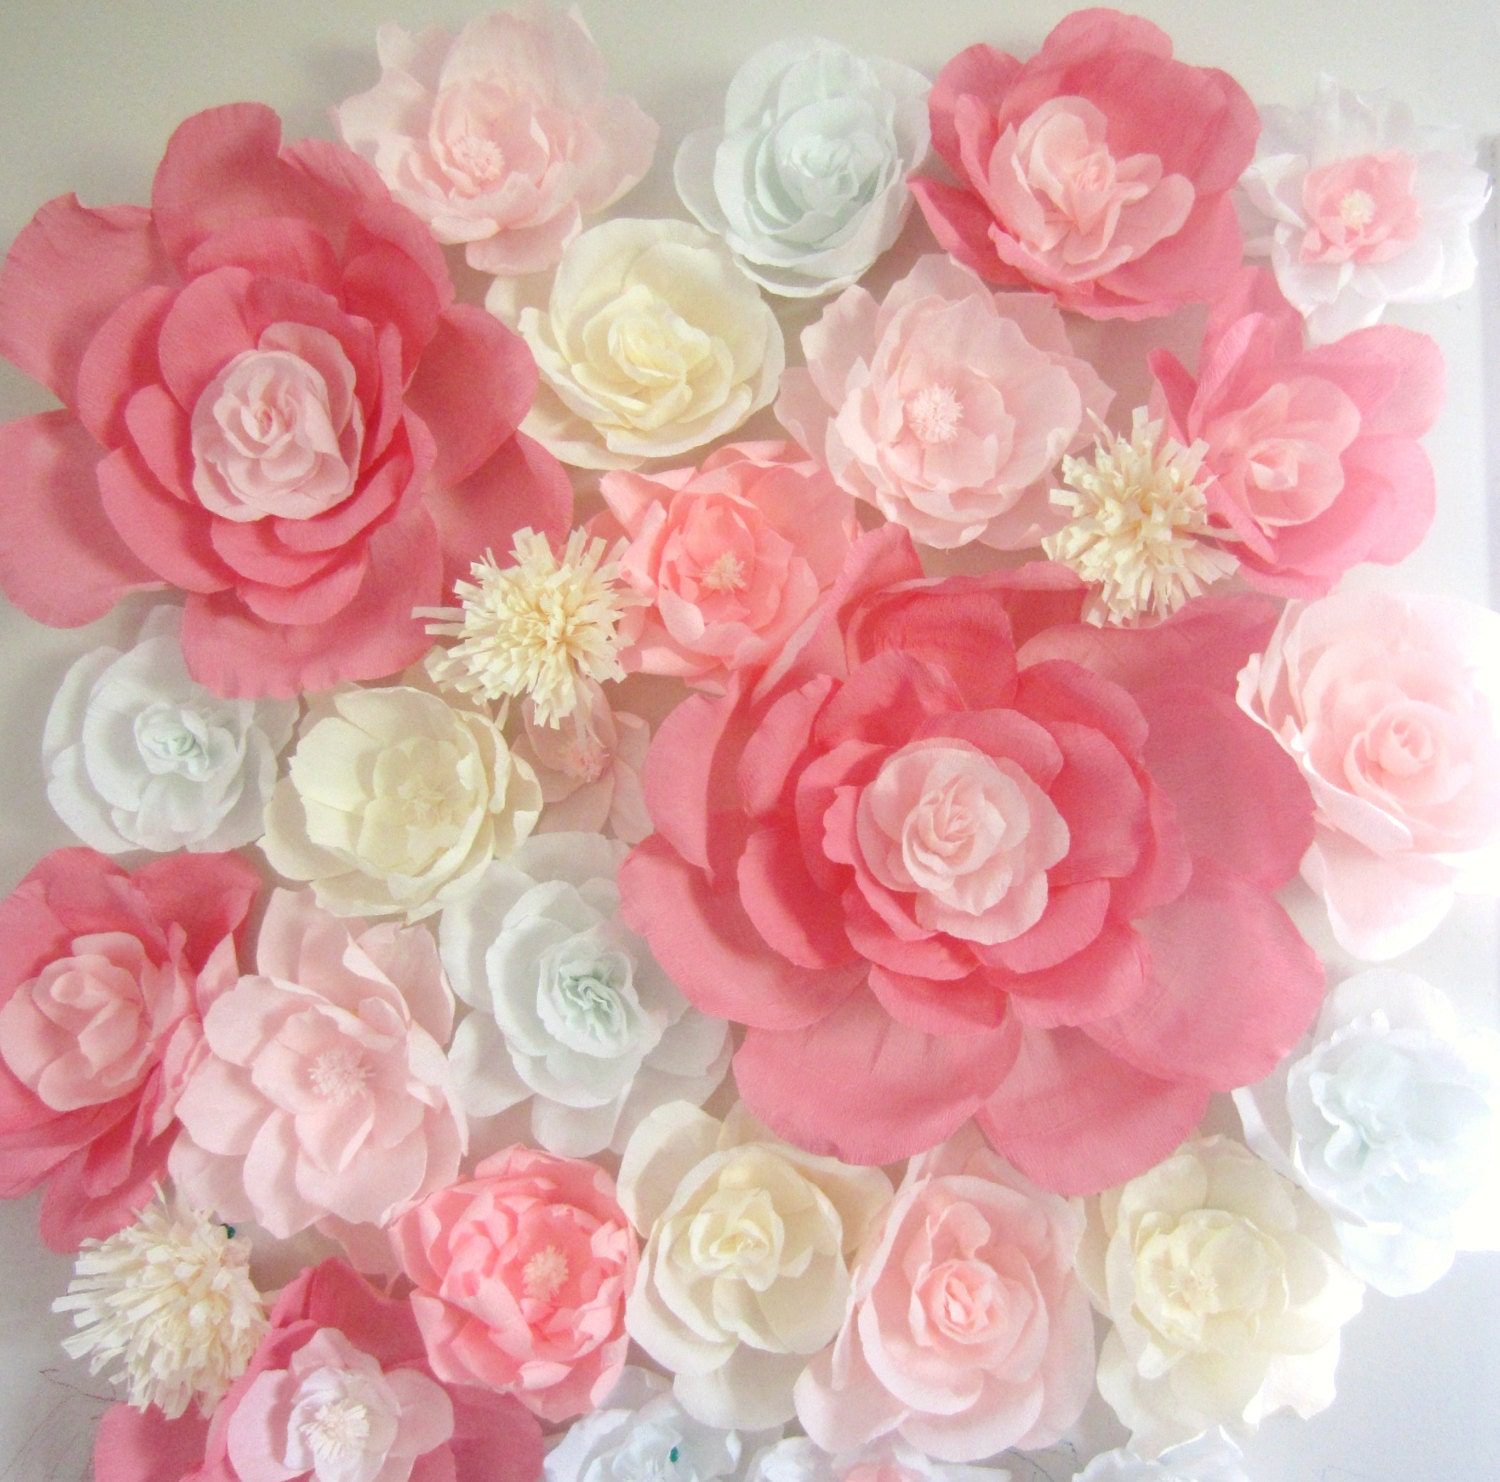 Giant Paper Flowers Wedding: Giant Paper Flower Wall Display 4ft X 4ft. Wedding